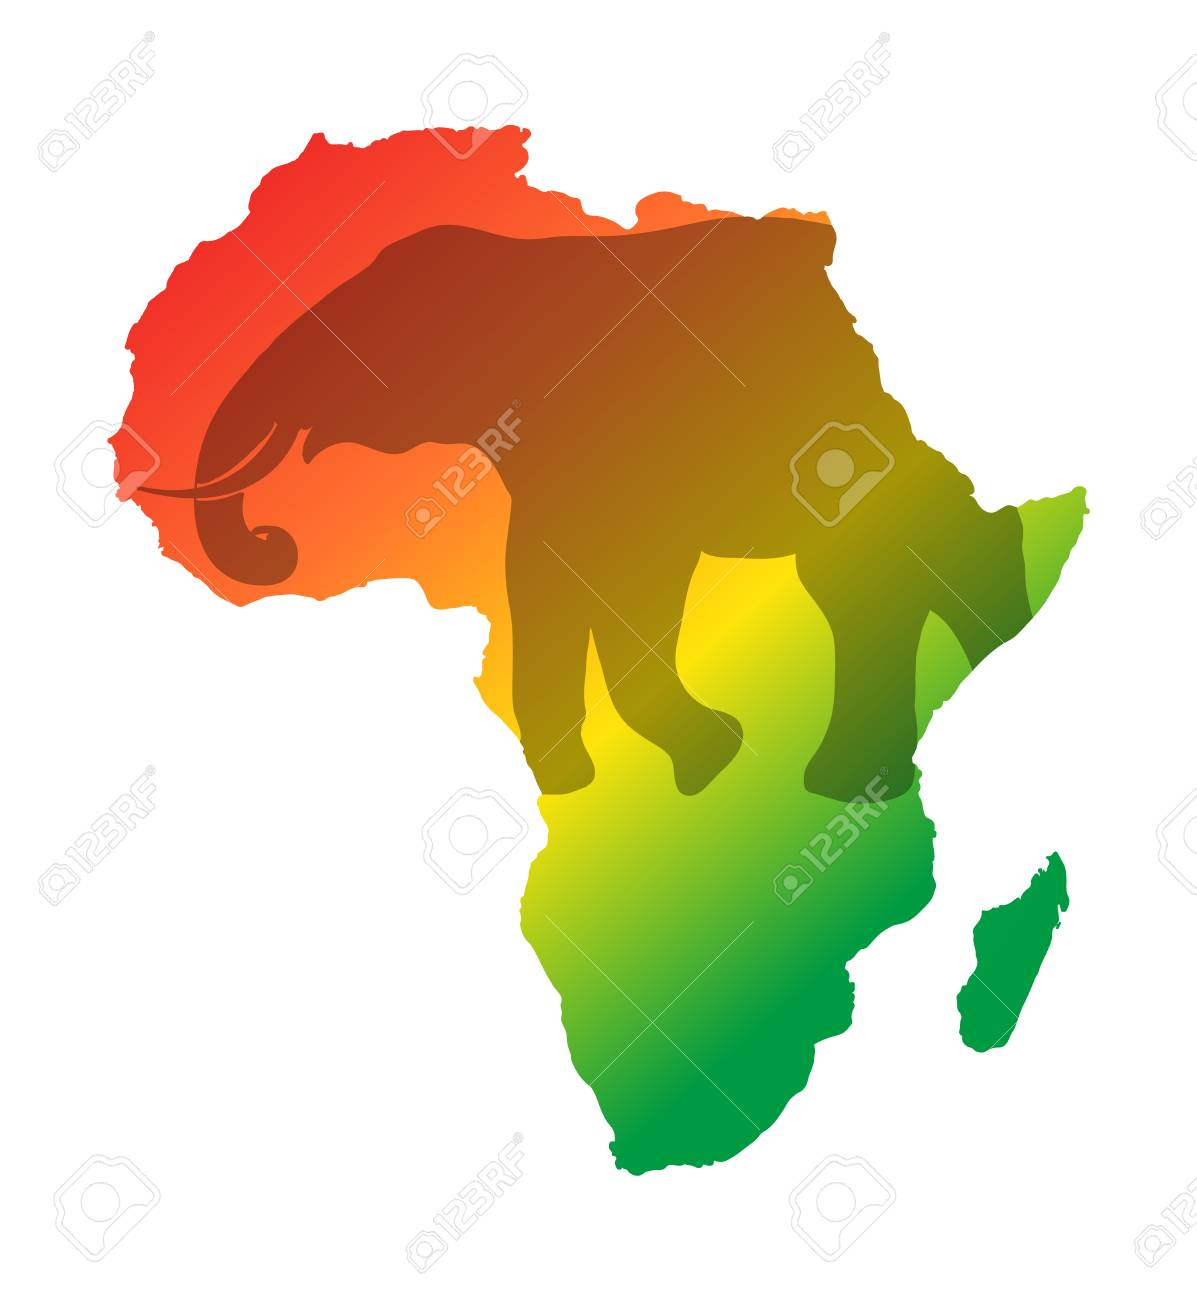 Colorful Map Of Africa.Colorful Africa Map Isolated On Transparently Background World